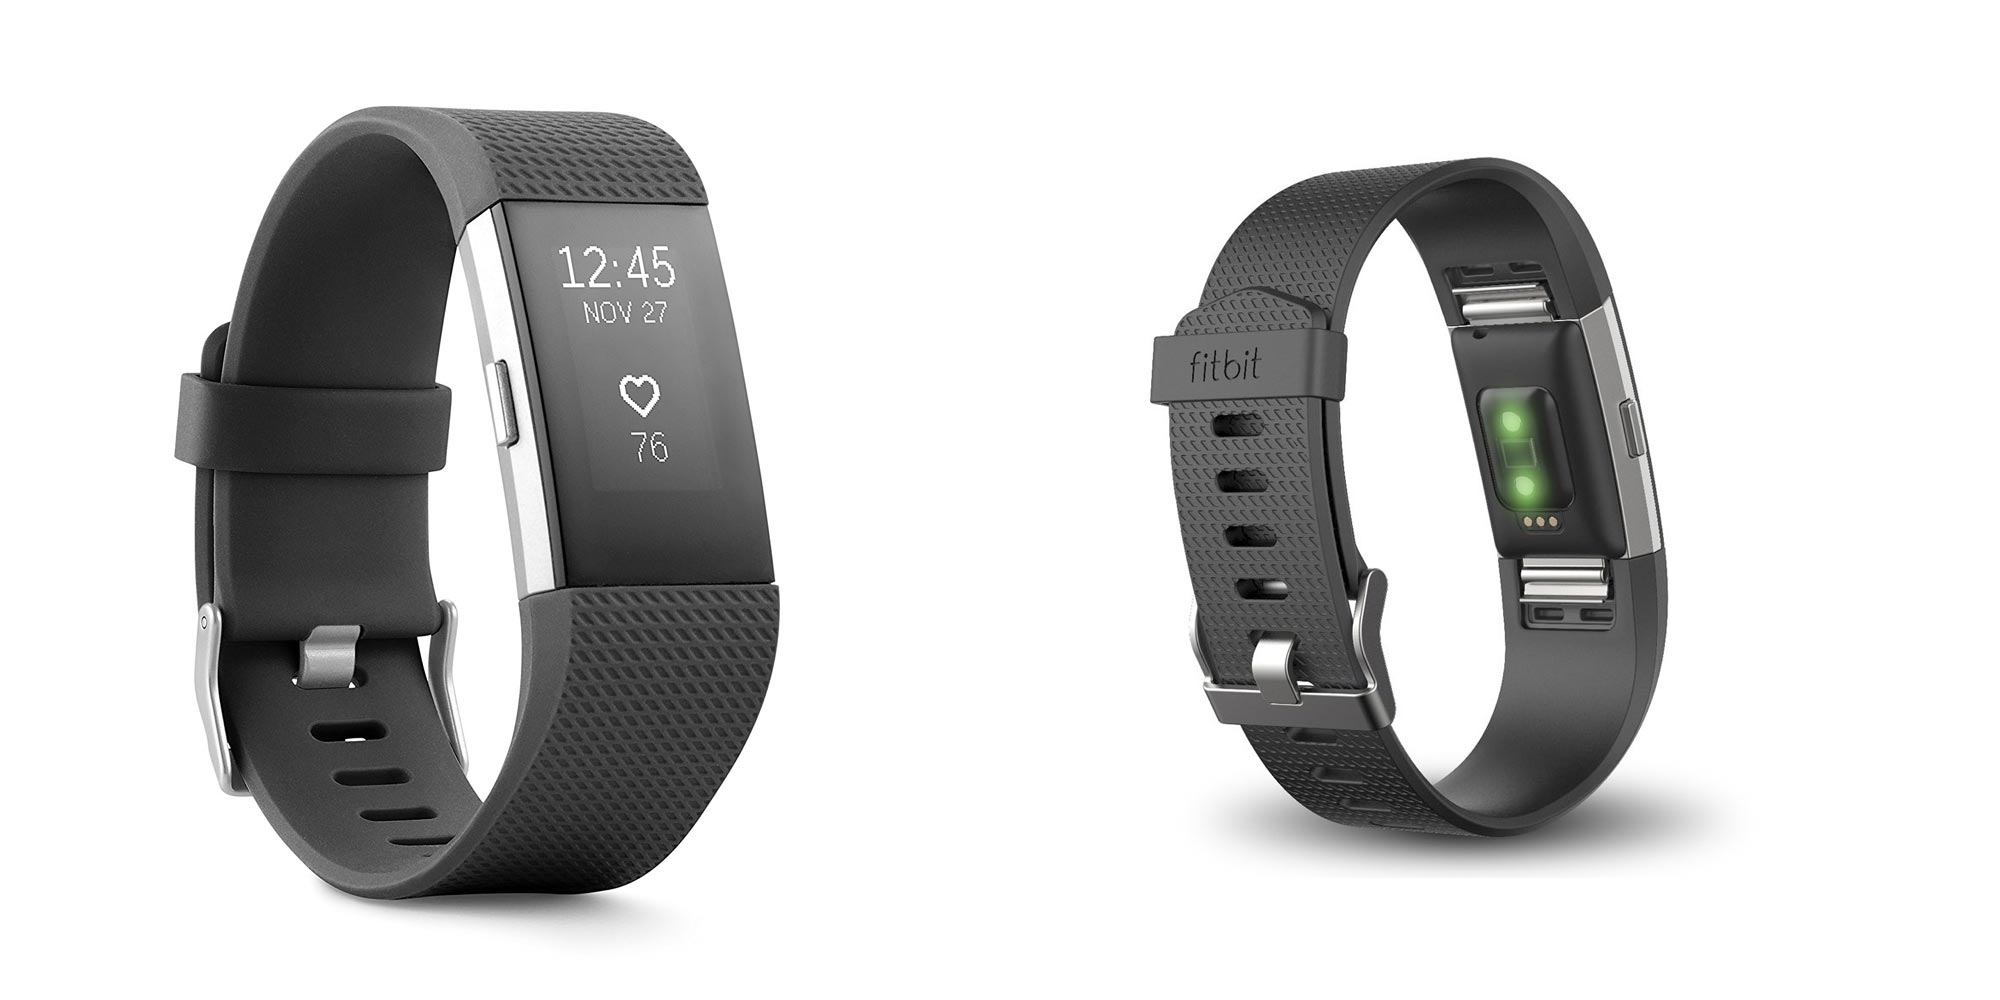 Fitbit Charge 2 sports five-day battery life & heart rate ...